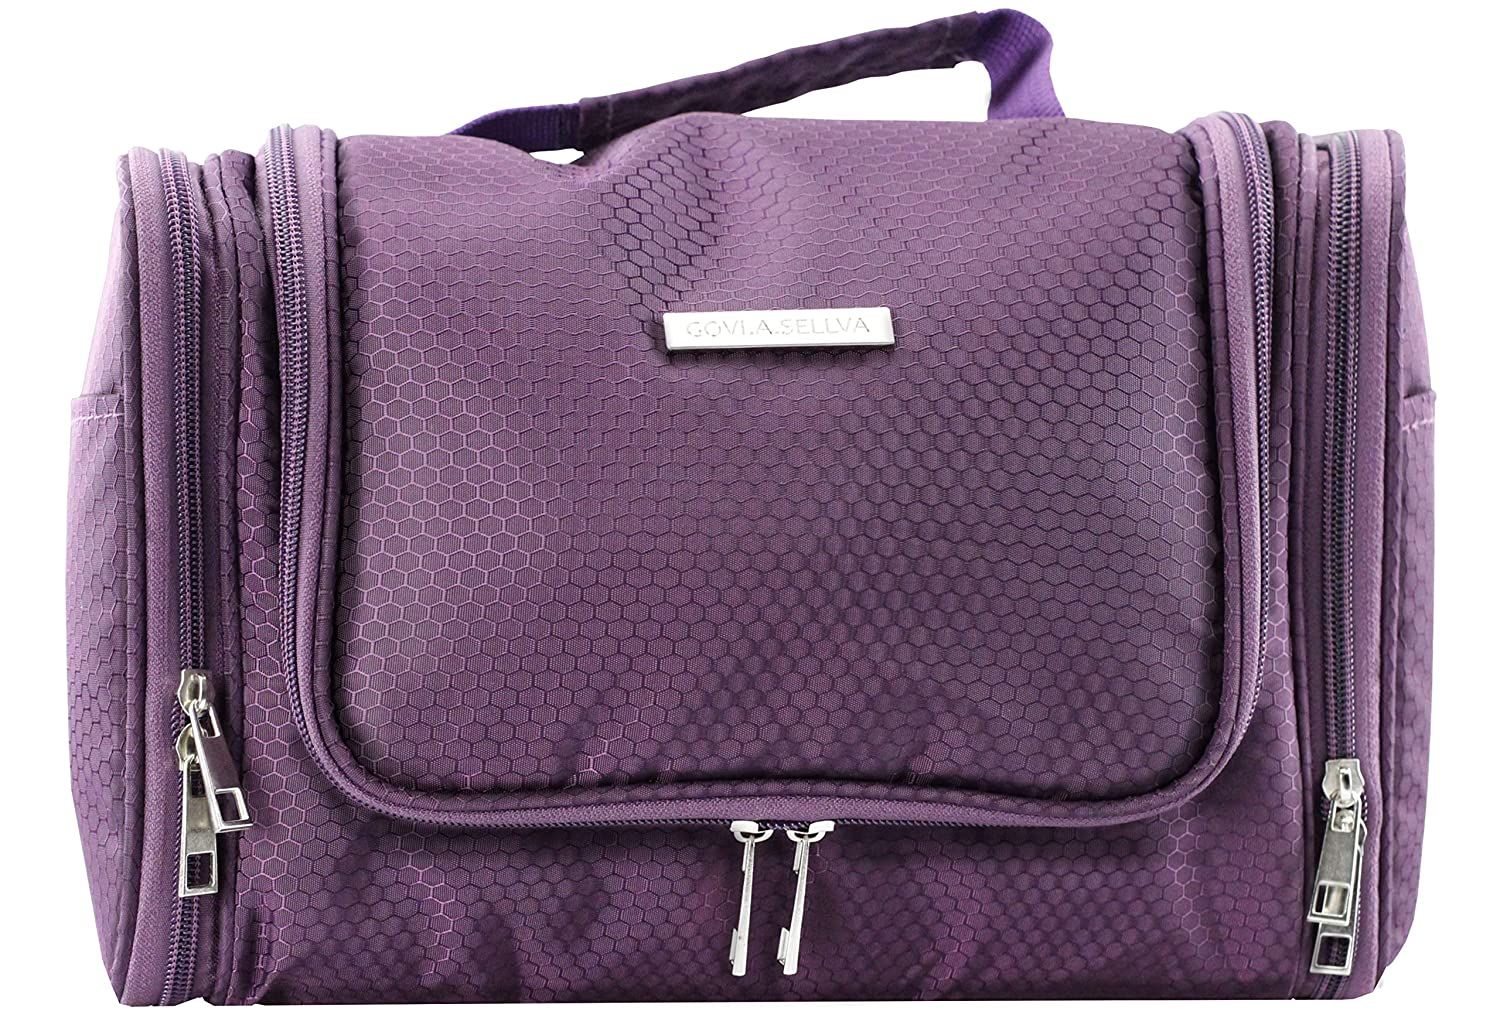 Toiletry Bag,Cosmetic Bag, GOVI.A.SELLVA XXL Toiletry Bag with large Capacity and Various Compartments for Travel Camping Business Trip 30x20x14cm Purple